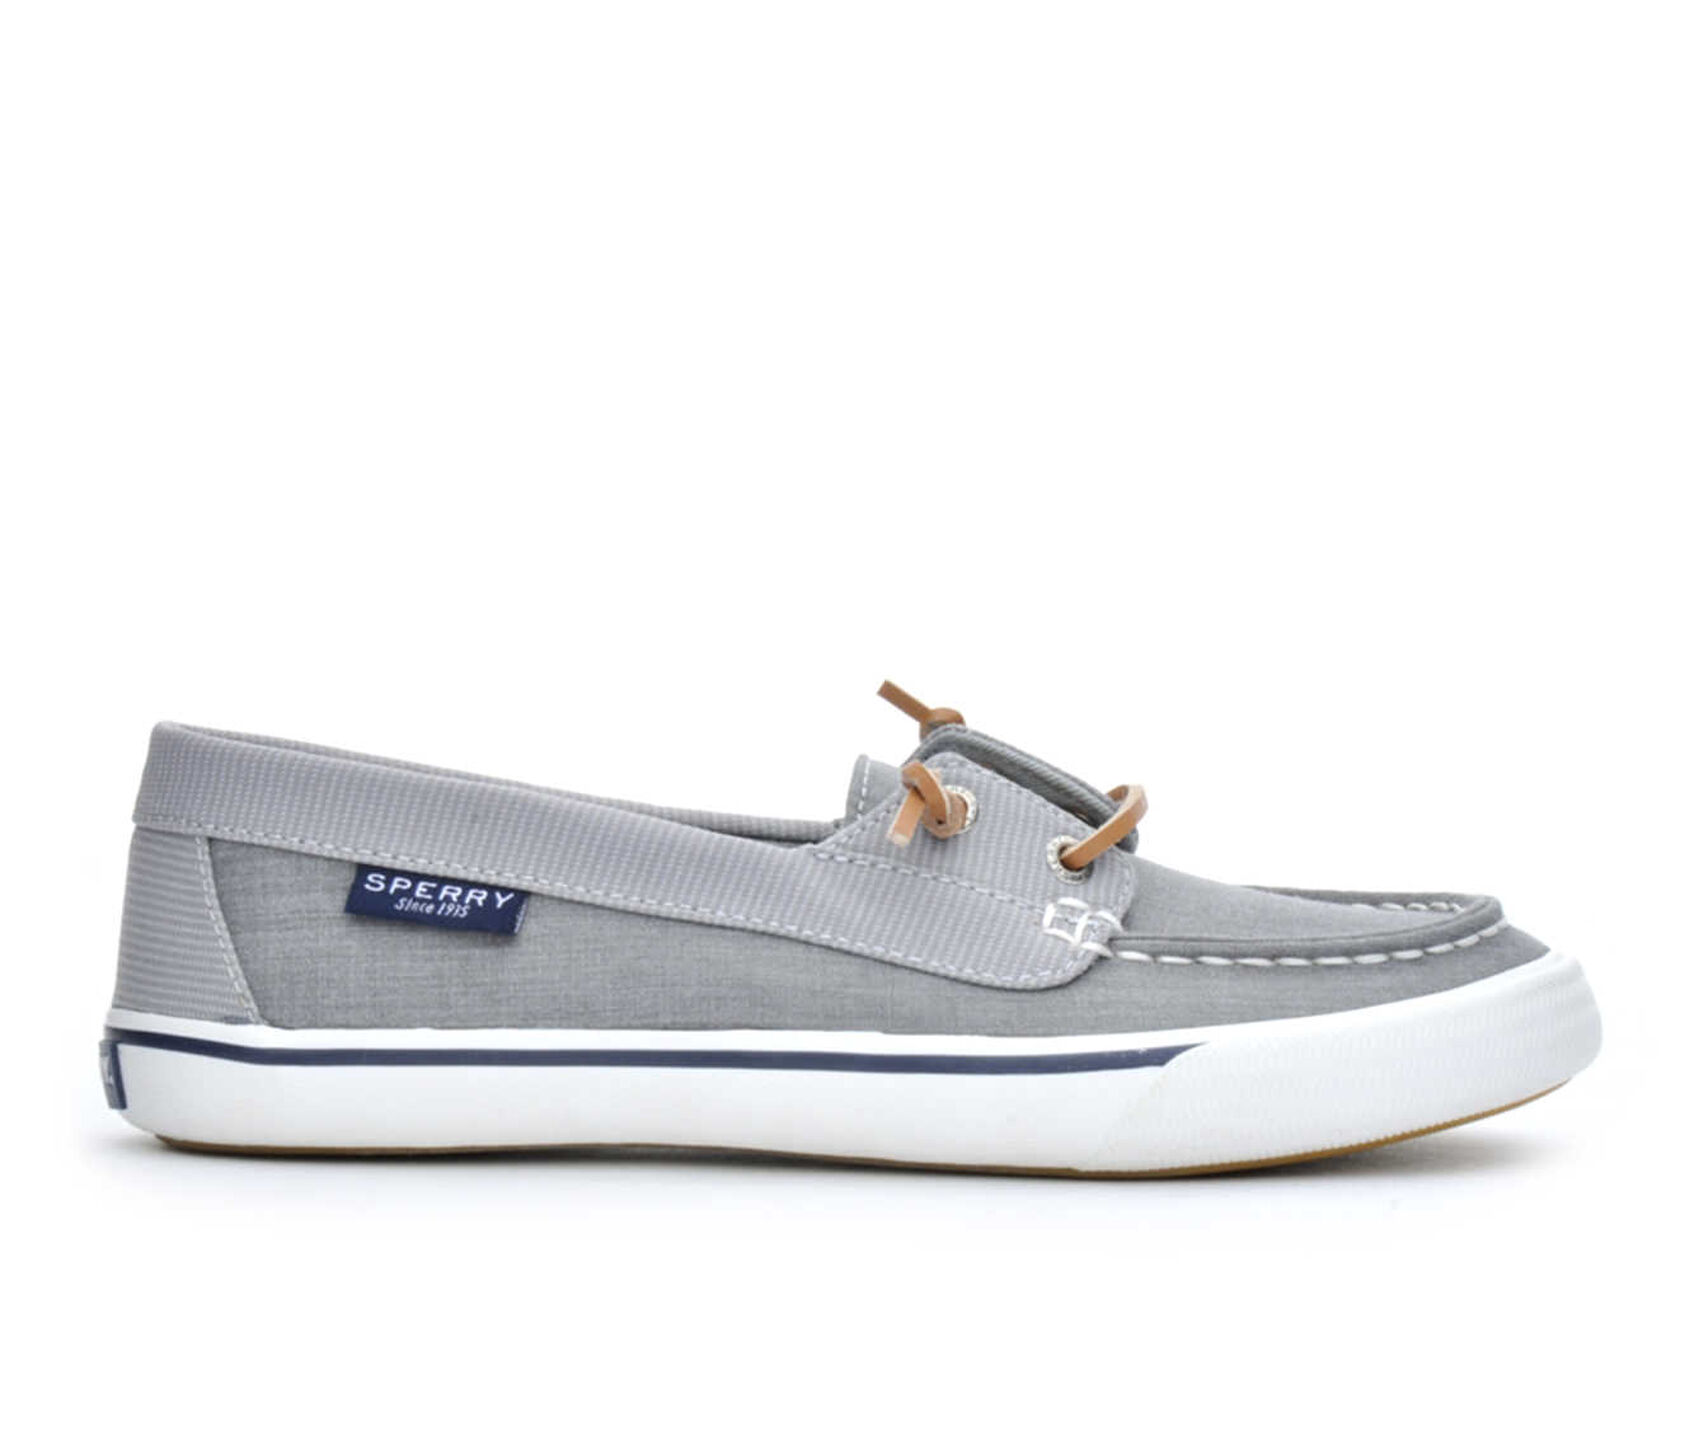 9c16b2d9cb64 ... Sperry Lounge Away Boat Shoes. Previous